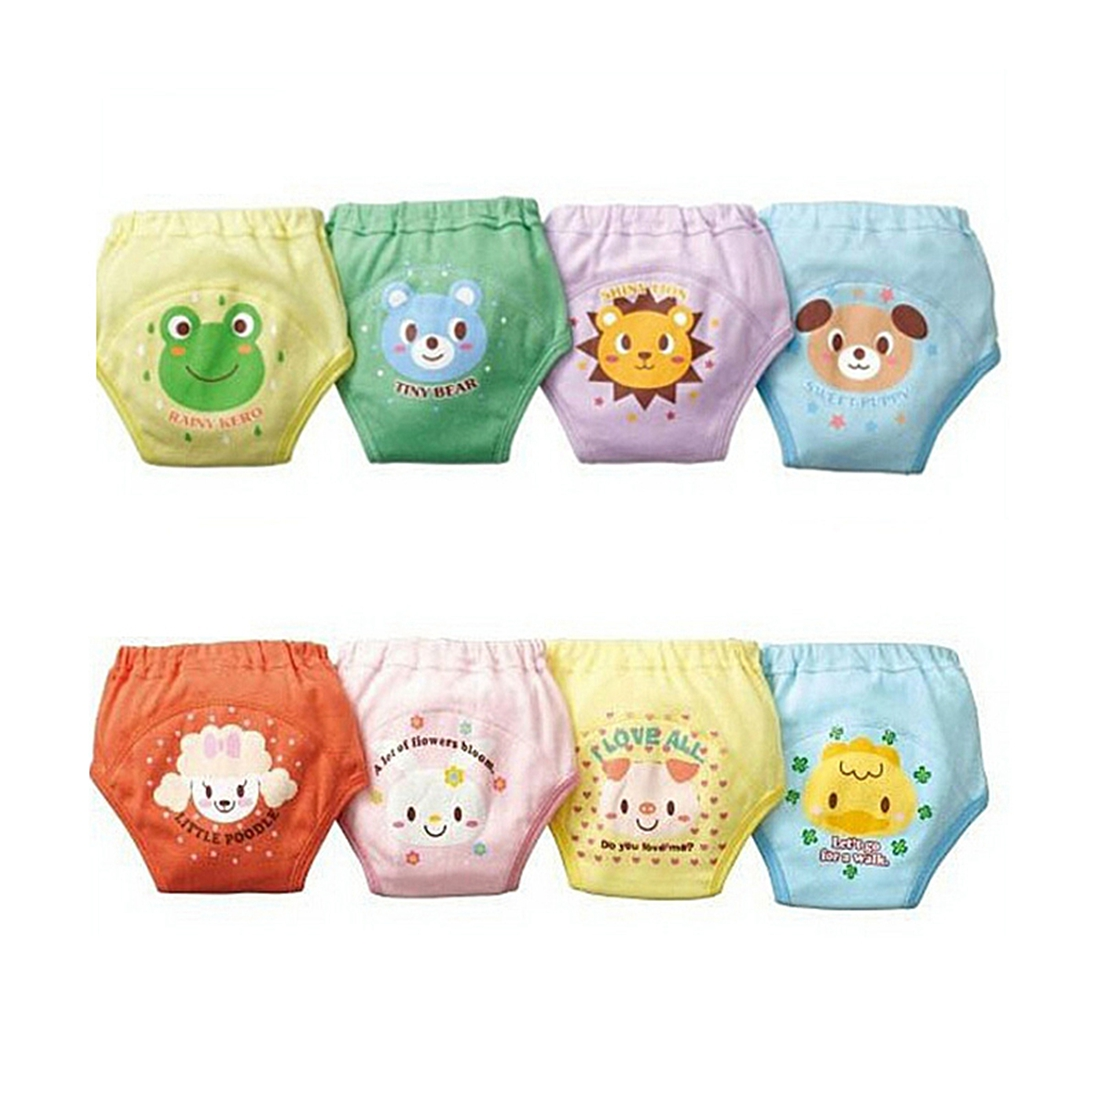 4 X Baby Toddler Girls Boys Cute 4 Layers Waterproof Potty Training Pants Reusable 4 Size Random Send